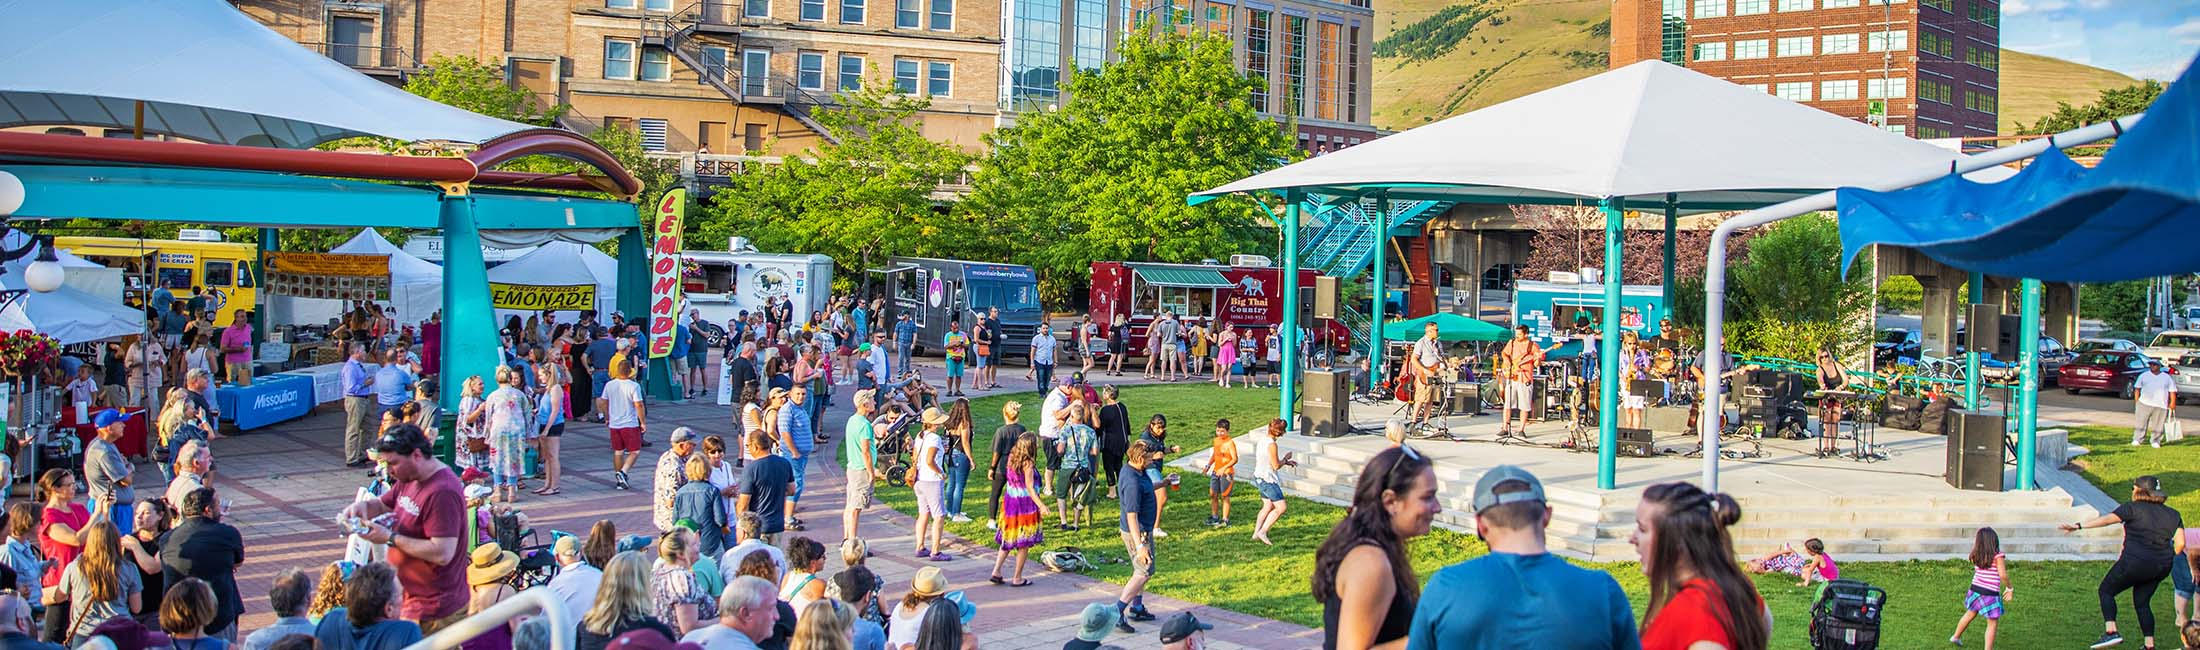 Your Monthly Guide to Missoula: August 2019